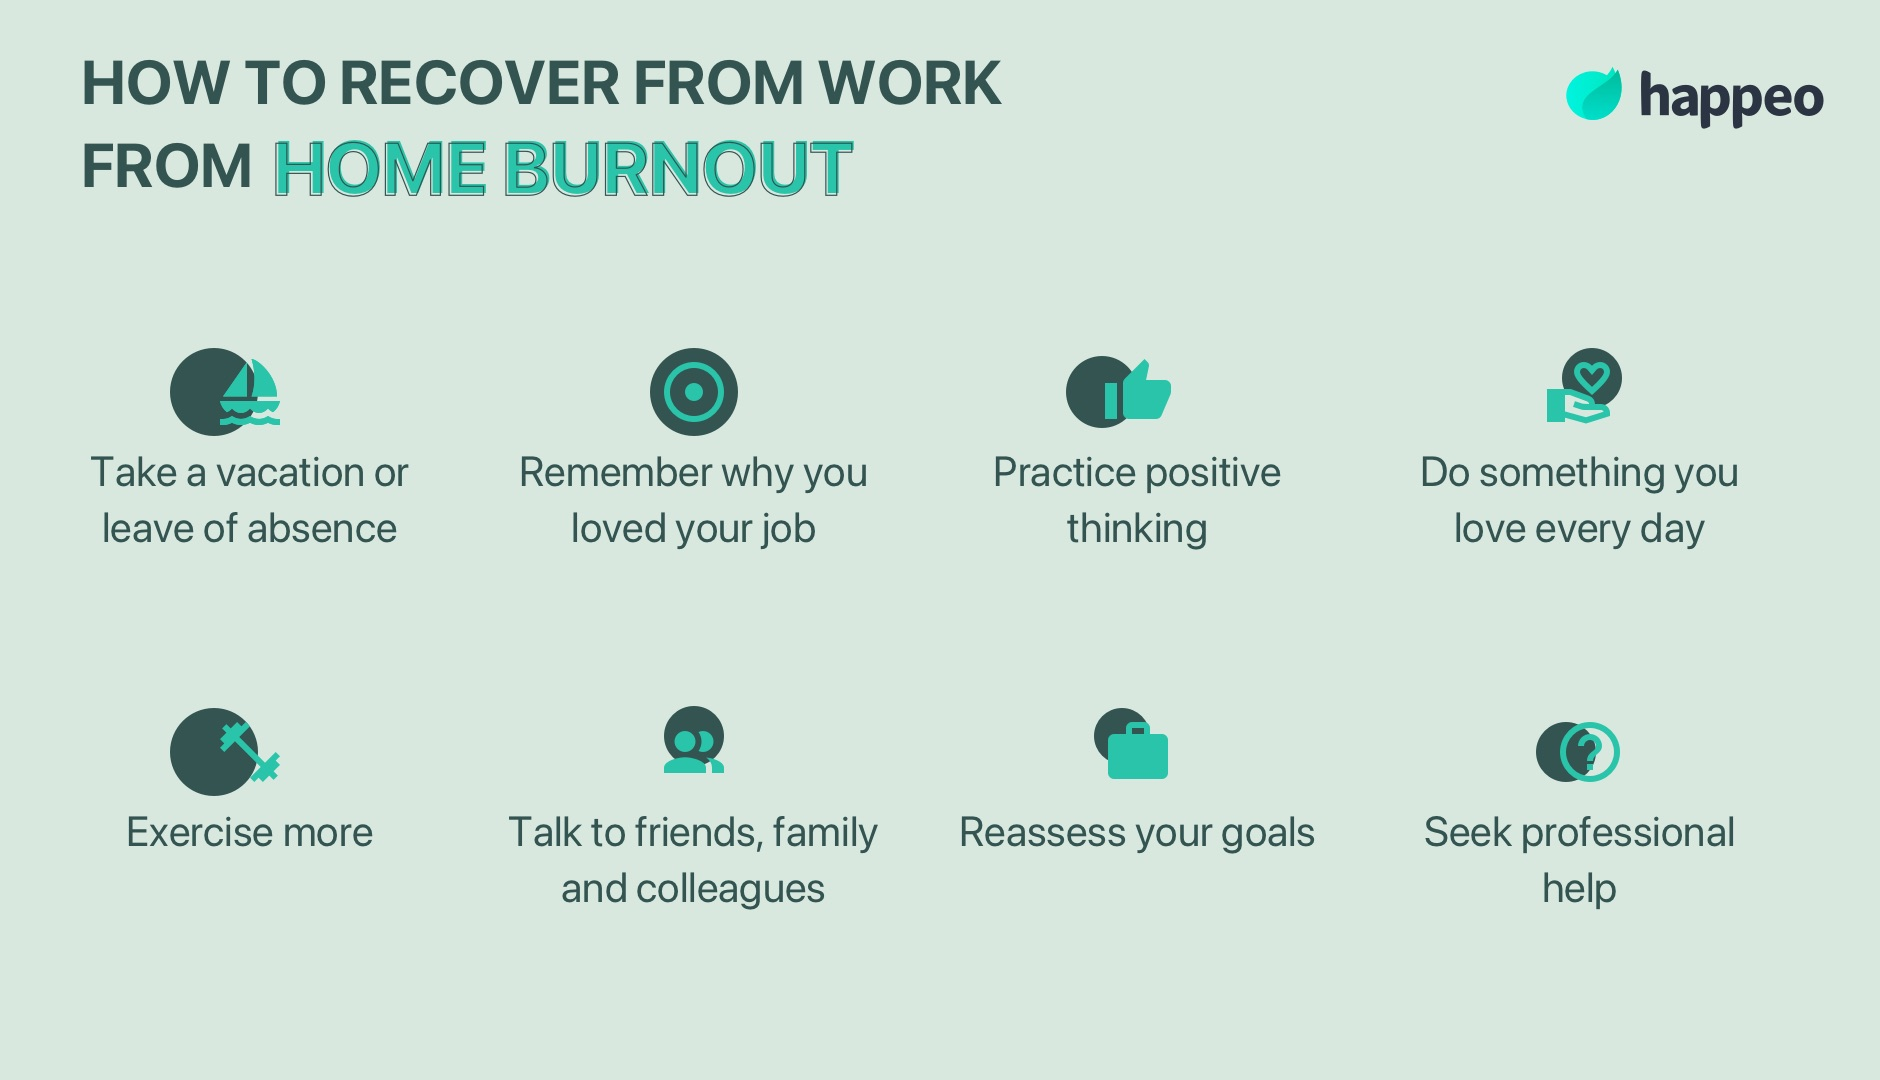 recover from work from home burnout